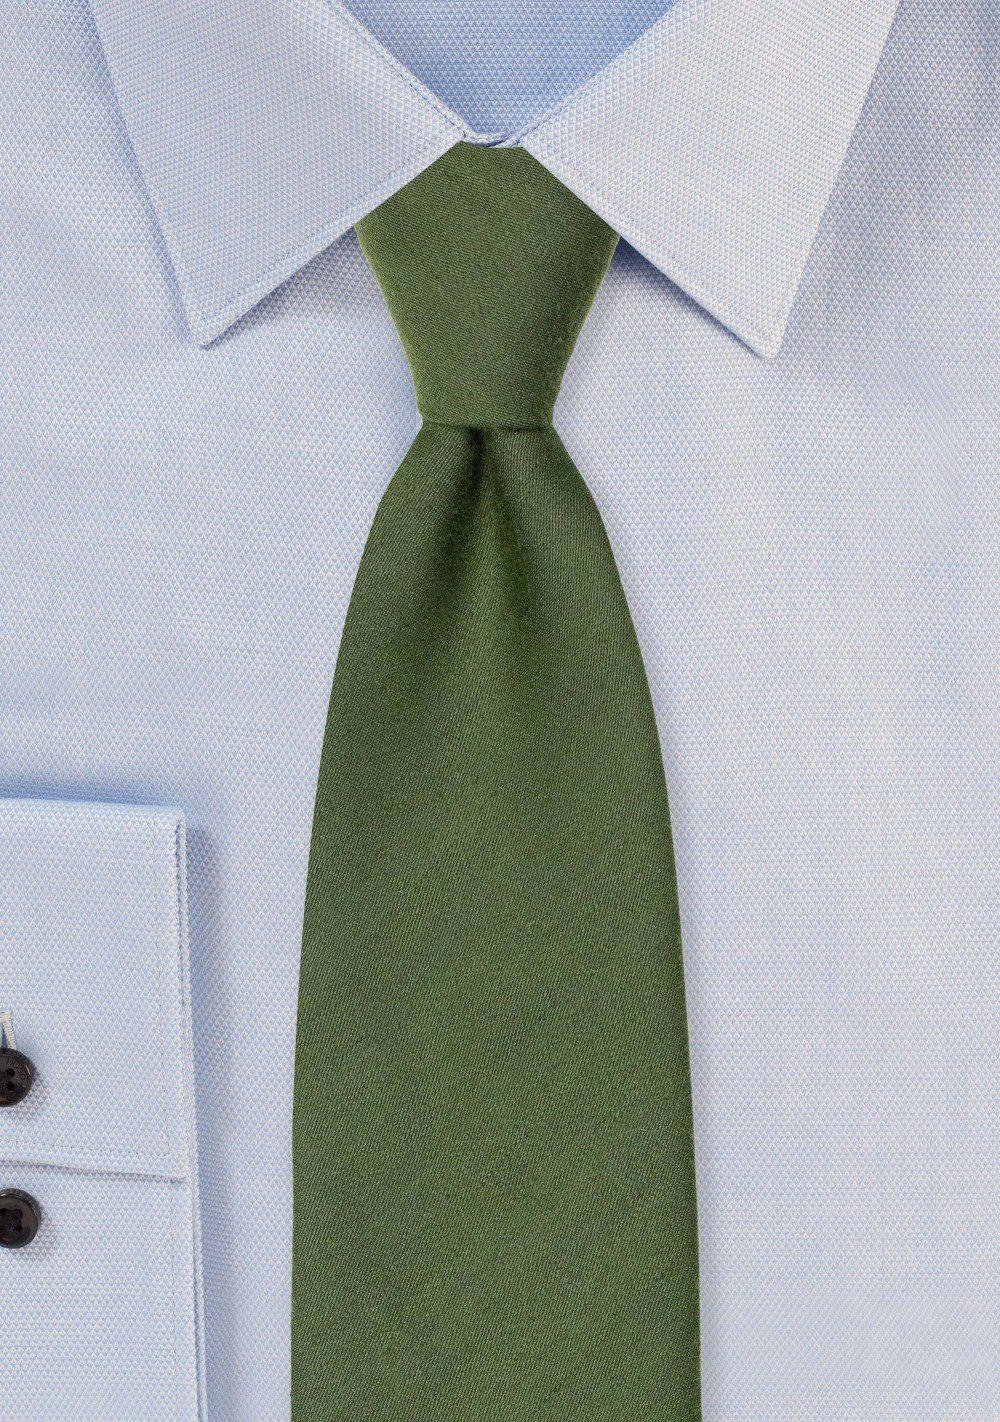 Olive Green Tie with Woolen Finish